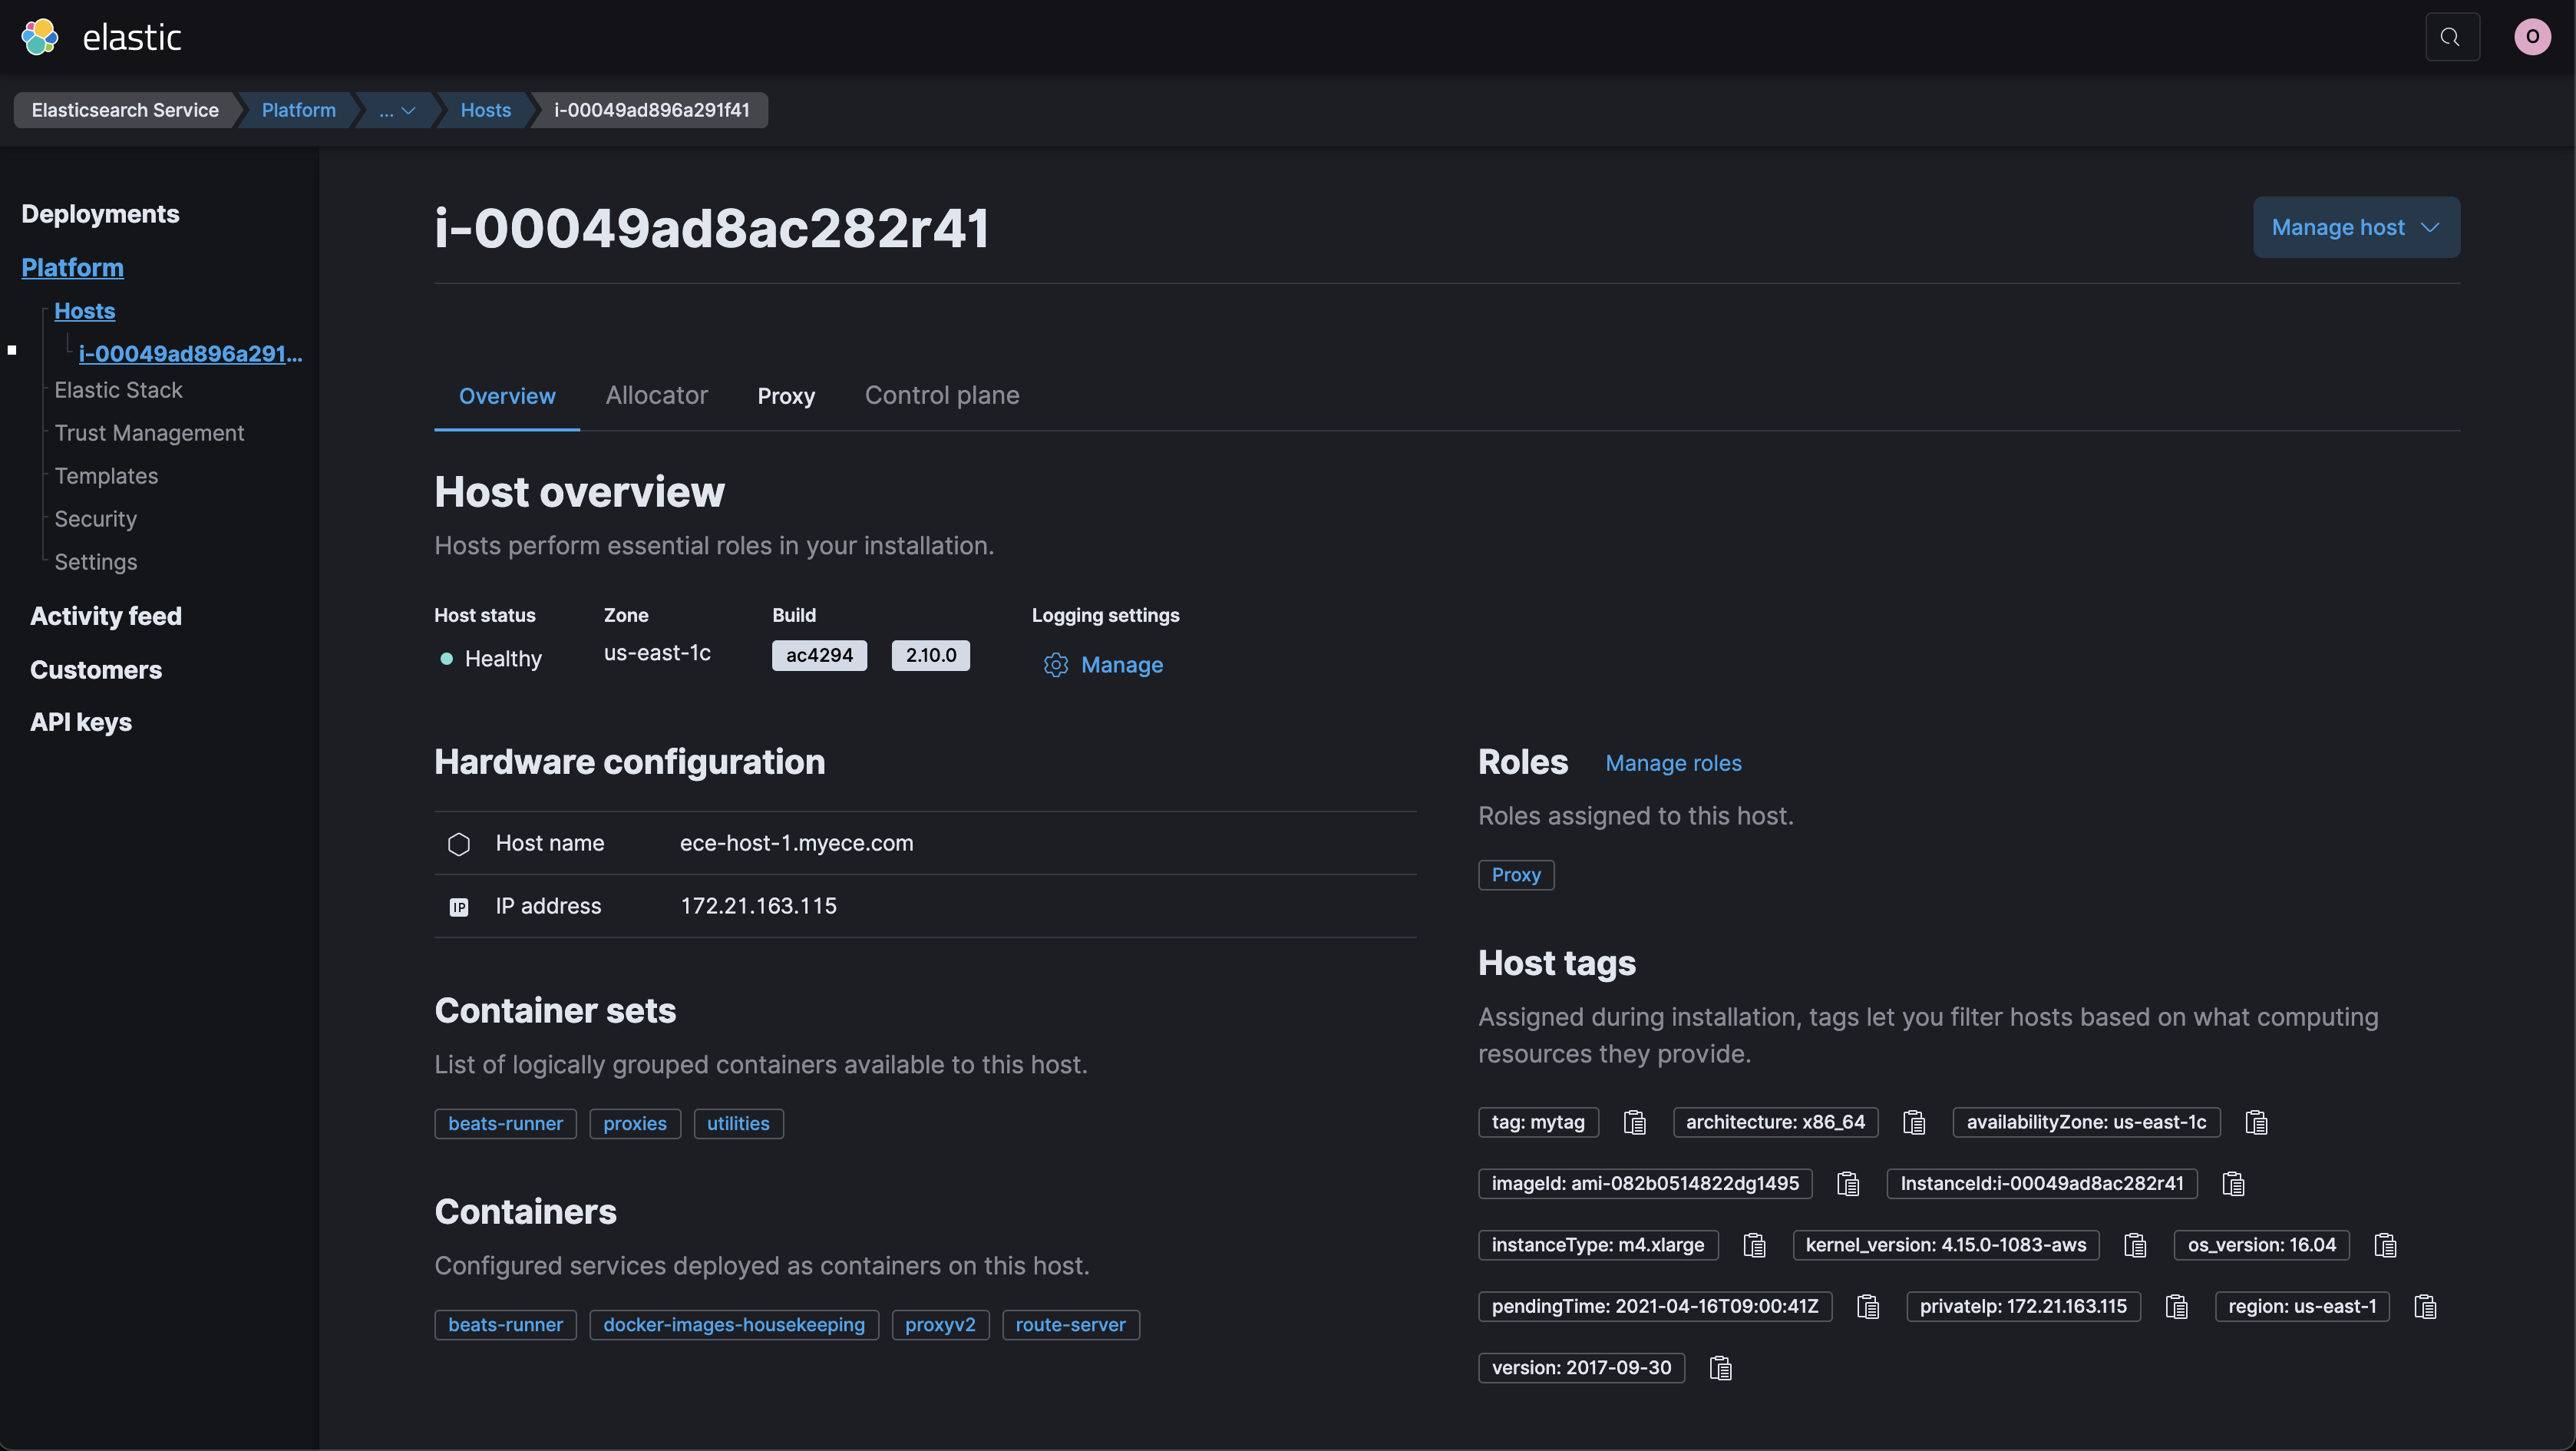 Screenshot of host overview page